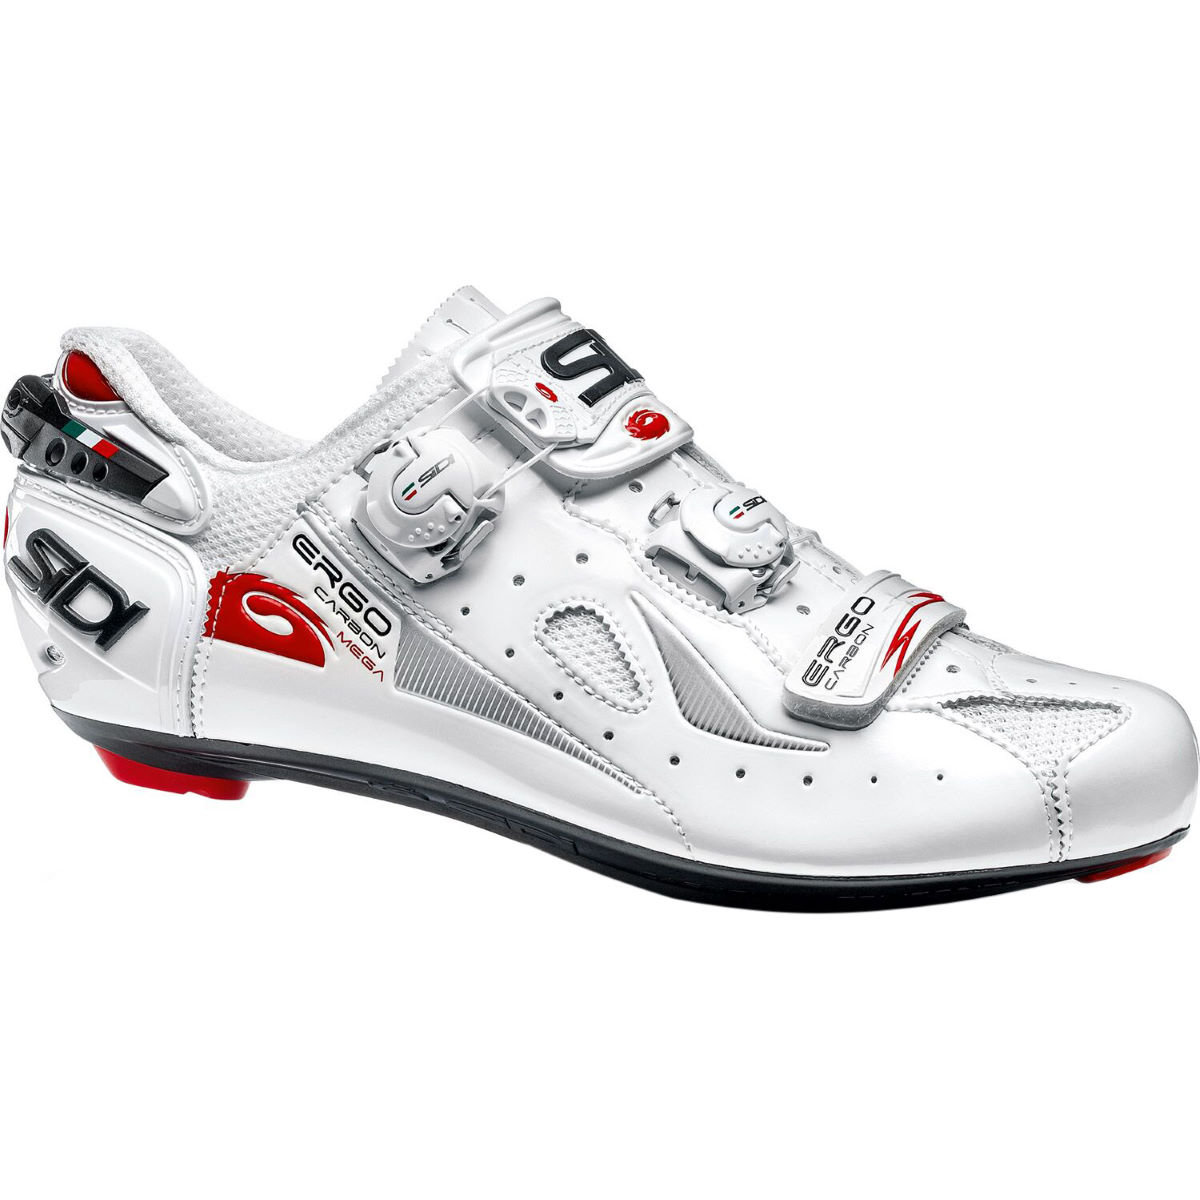 Sidi Ergo 4 Carbon Road Shoes (Mega/Wide Fit) - 48 White/White